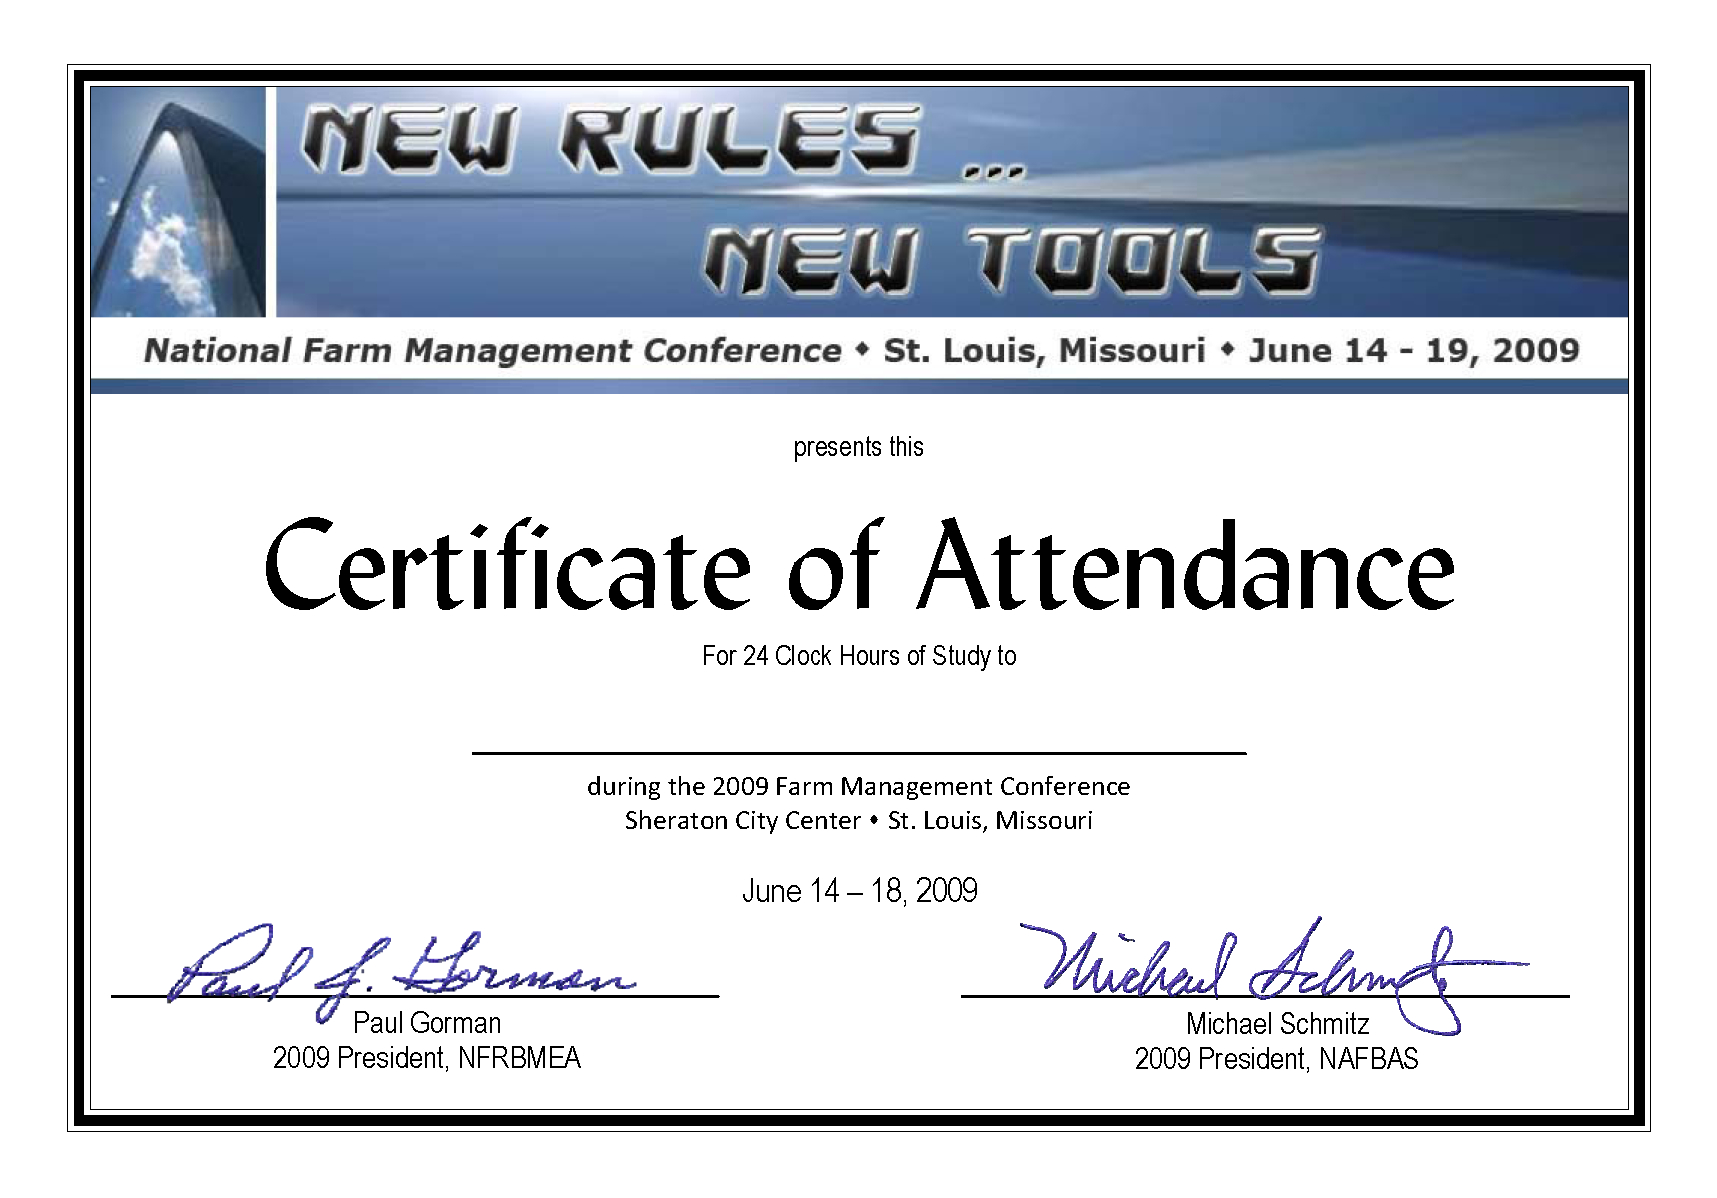 Conference Certificate Of Participation Template | Radiofixer.tk intended for Certificate Of Attendance Conference Template